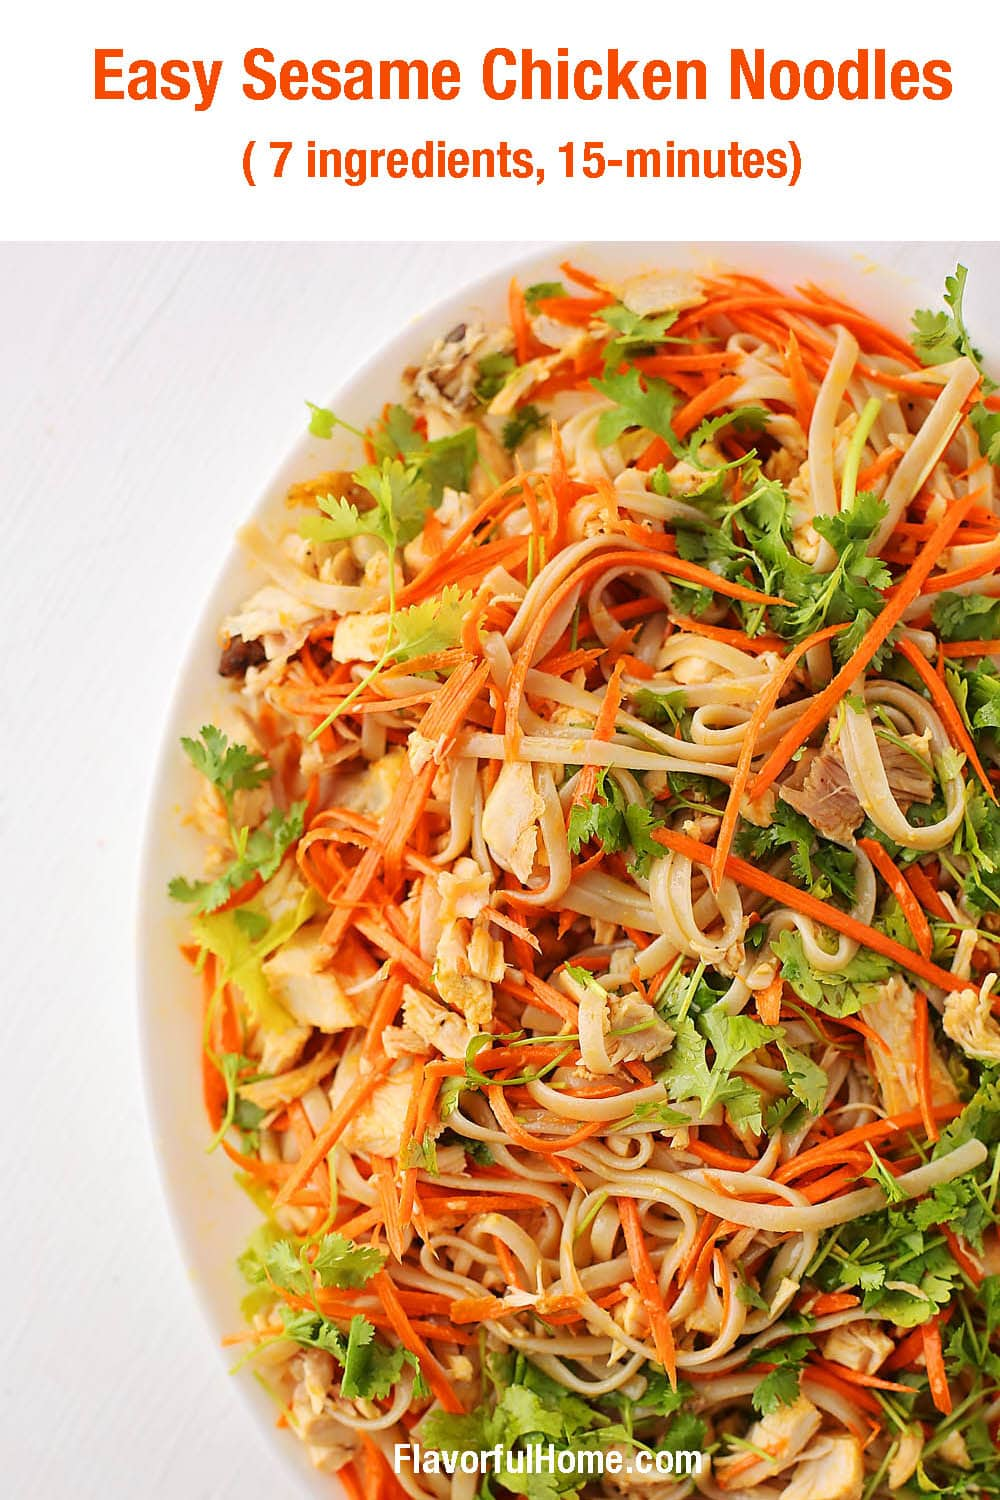 large dish with noodles, carrots, cilantro, chicken, and nuts